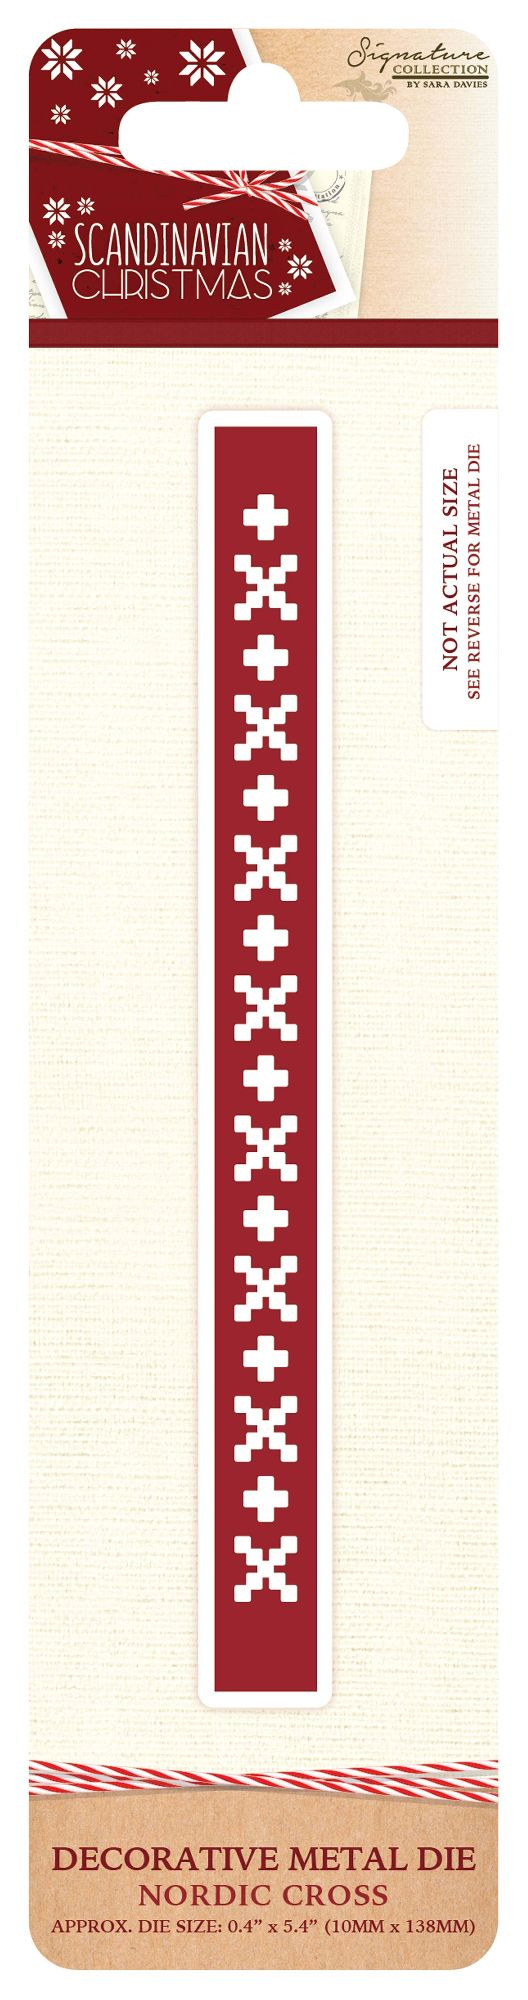 Scandinavian Christmas - Nordic Cross